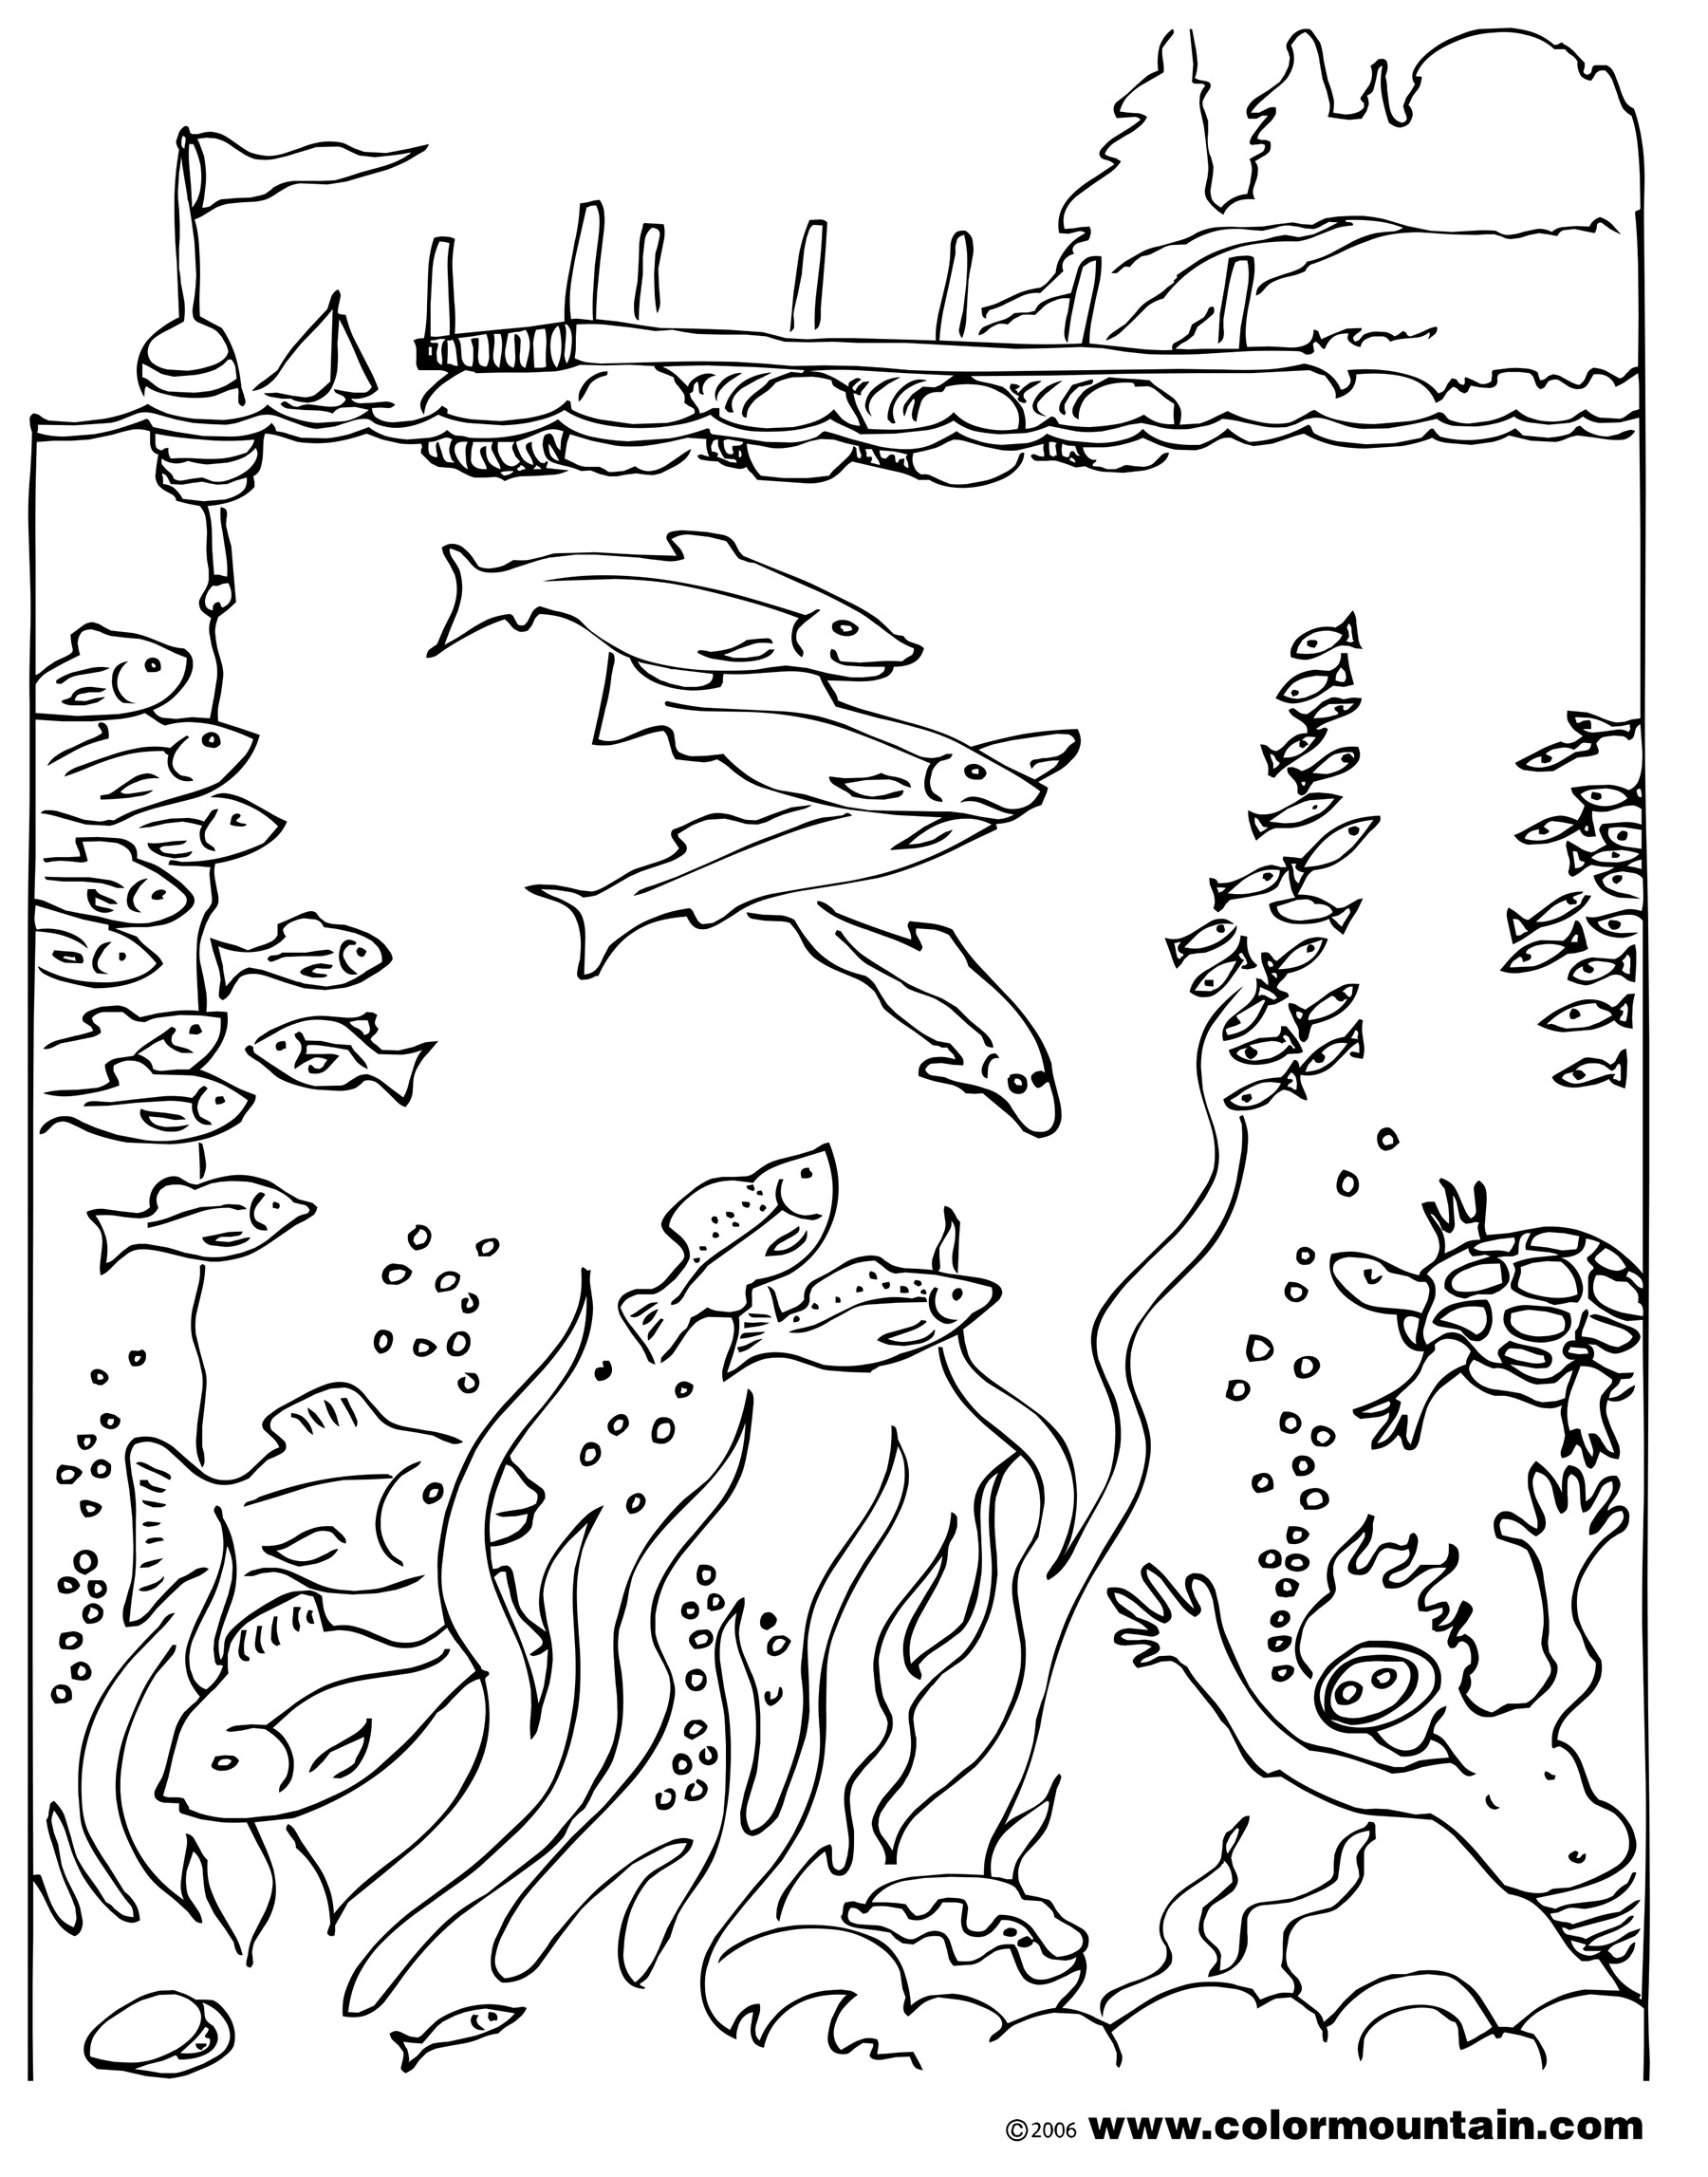 Responsibility Coloring Pages At Getcolorings